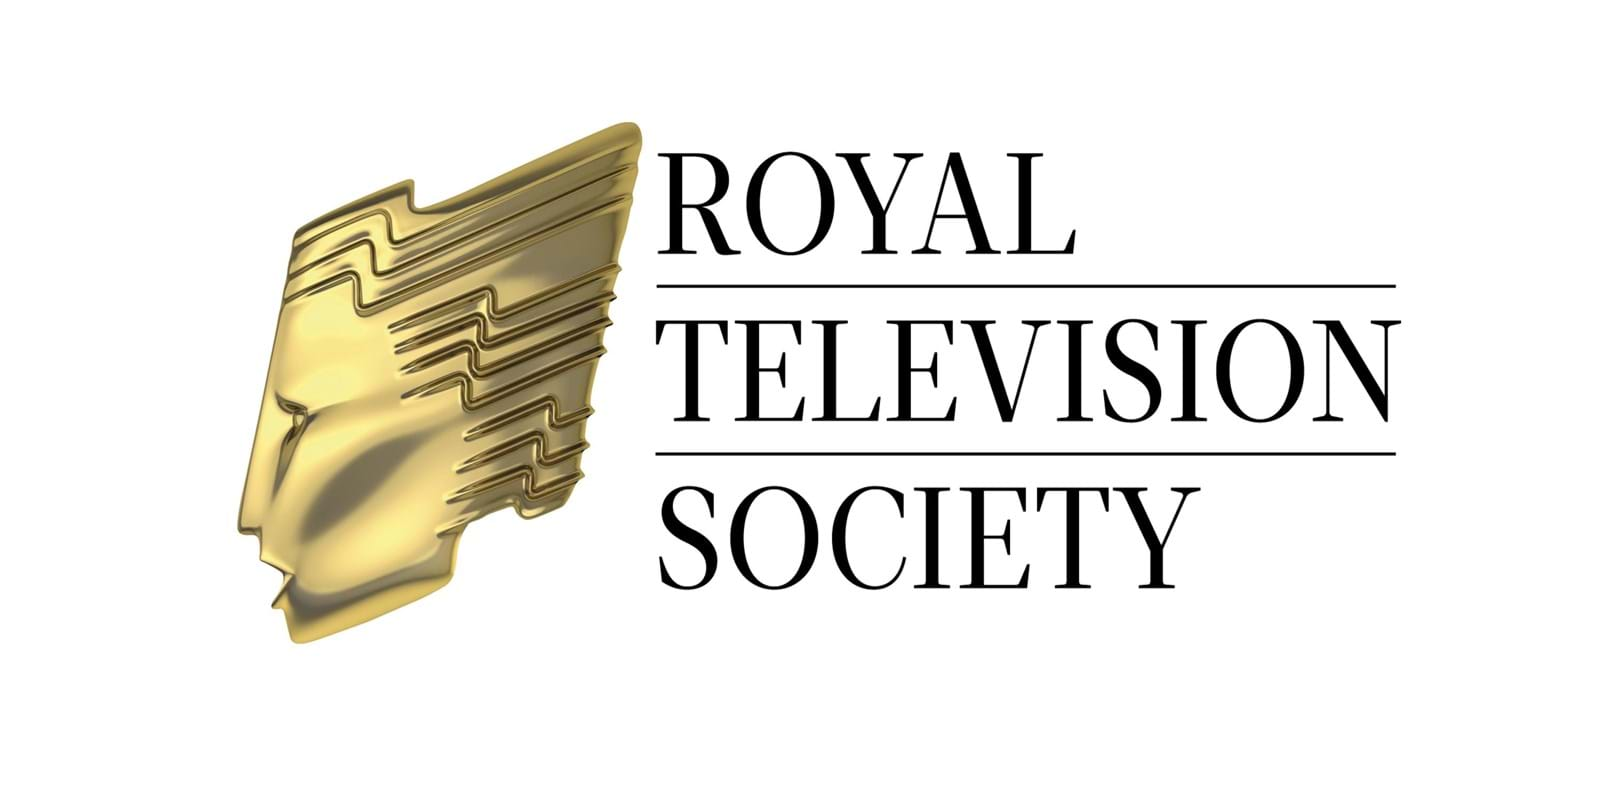 Sunset+Vine nominated for an RTS Programme Award!